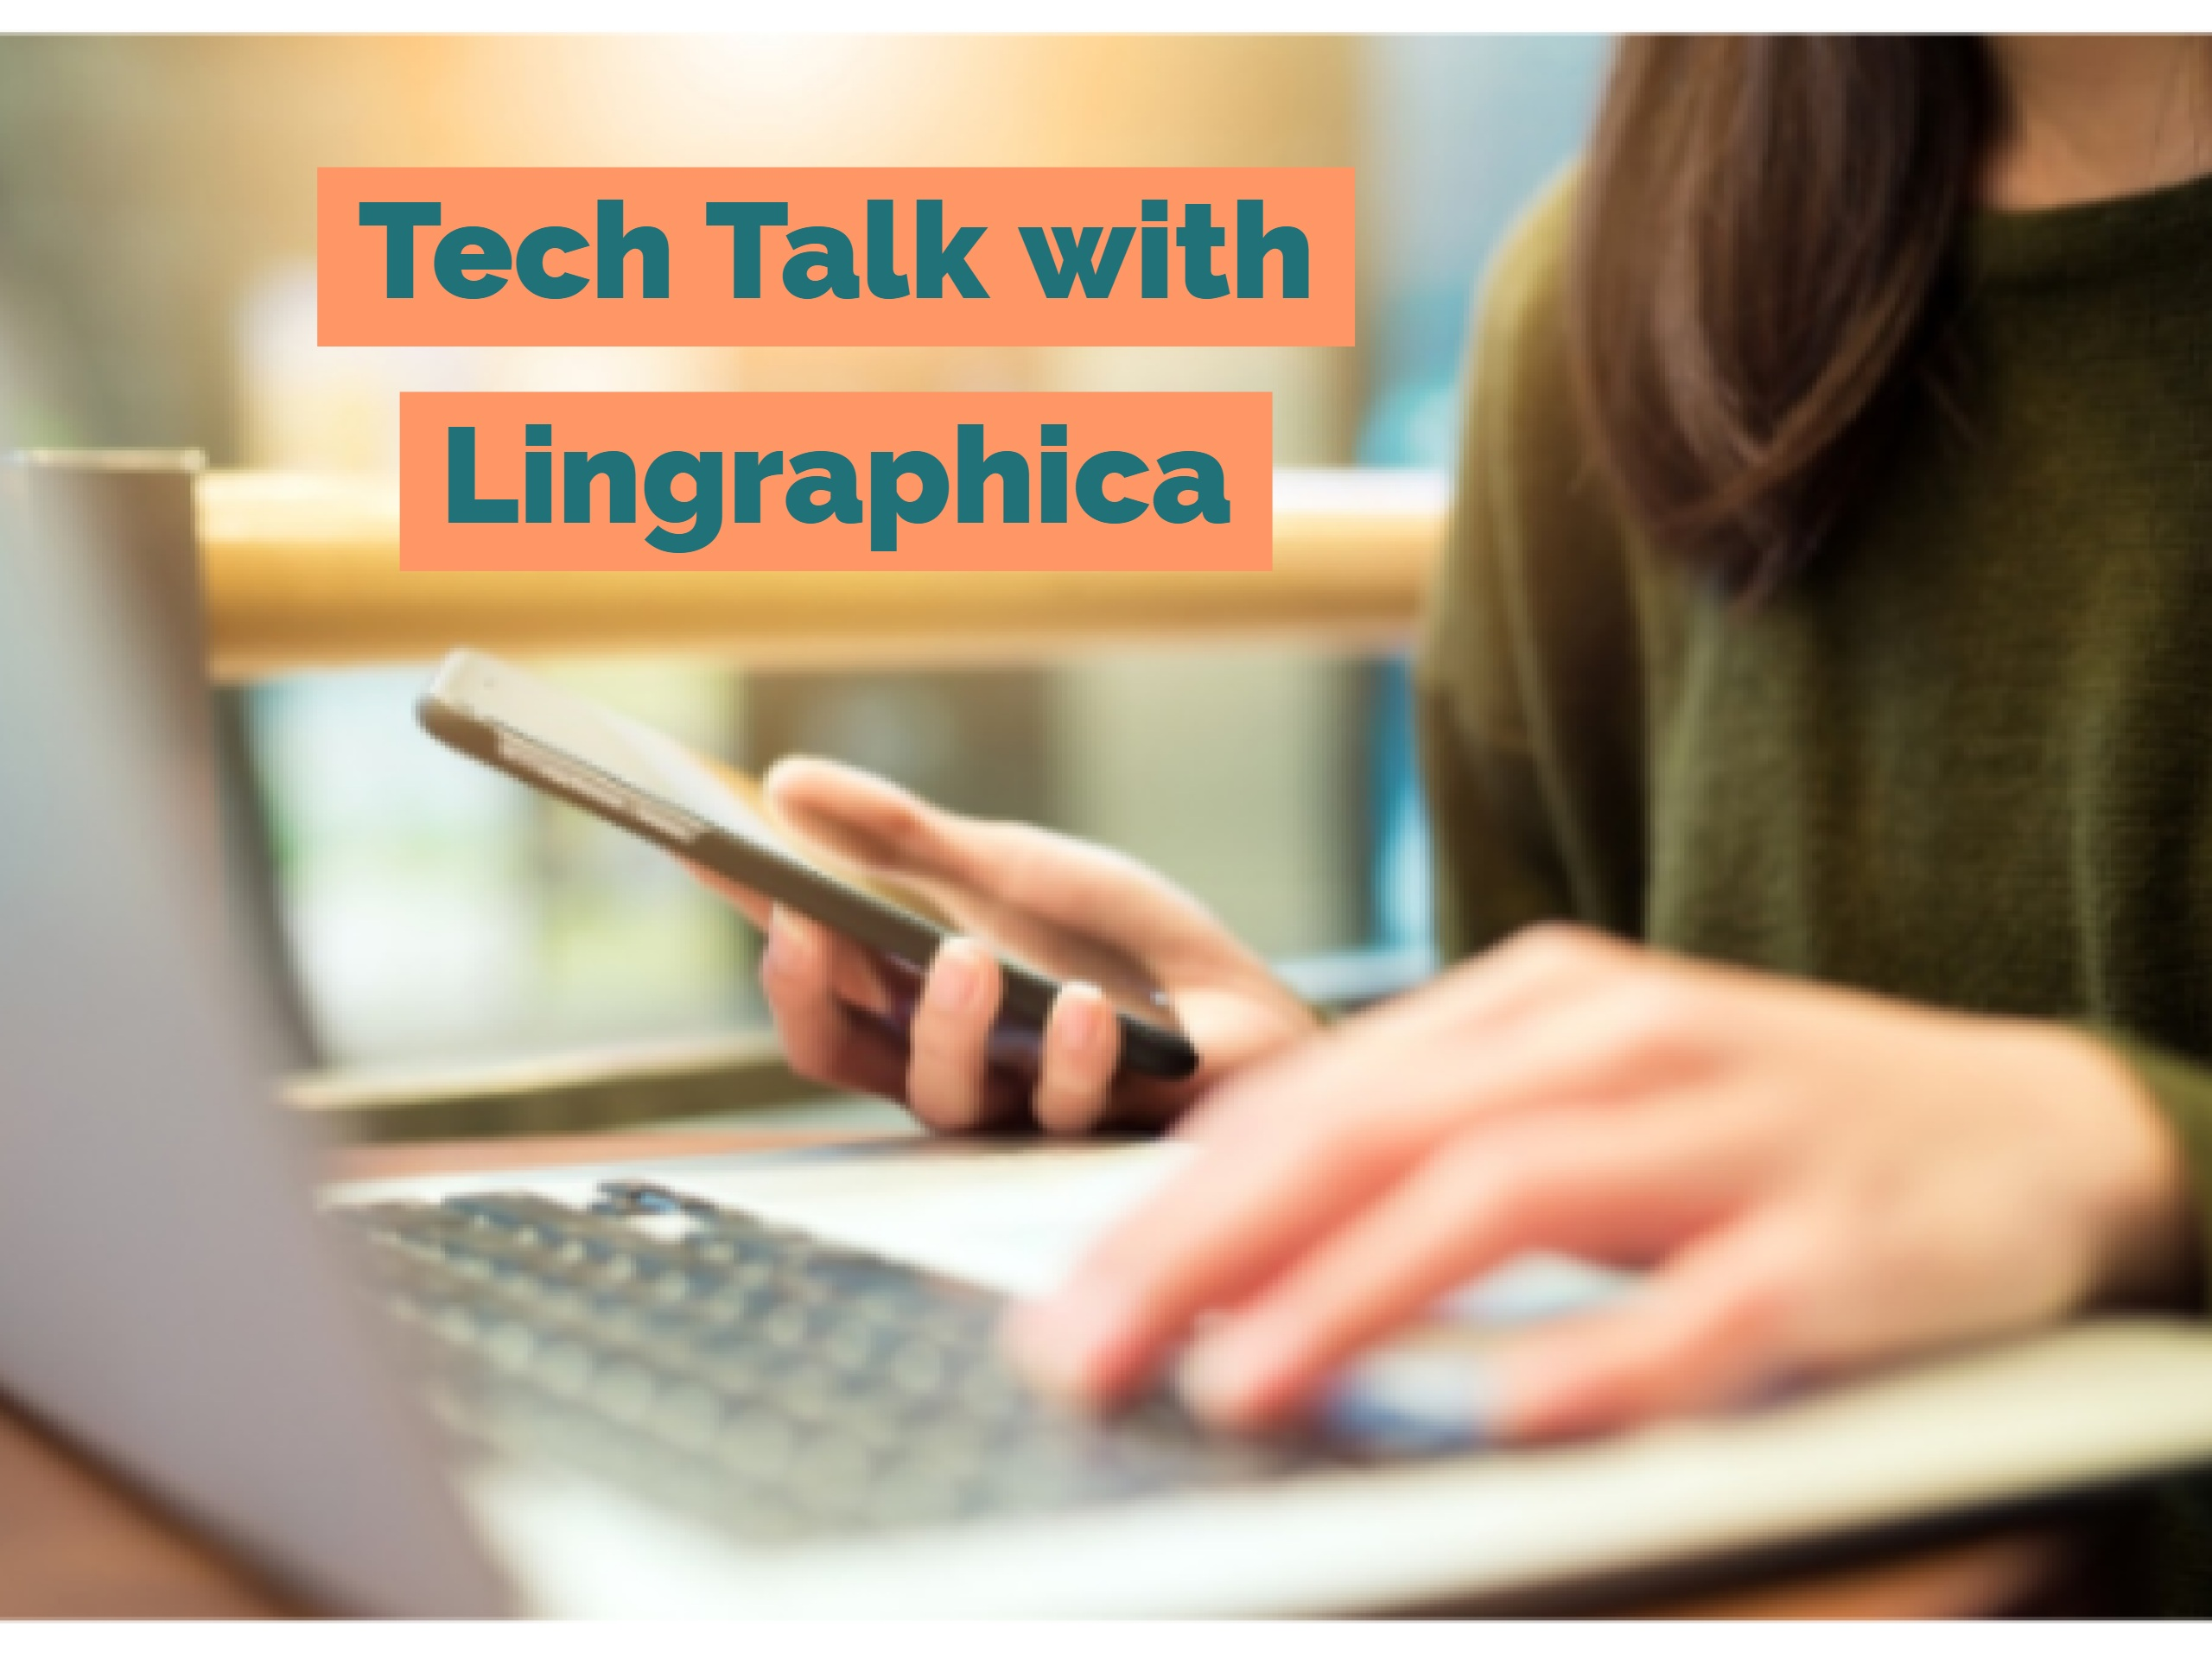 Tech Talk with Lingraphica